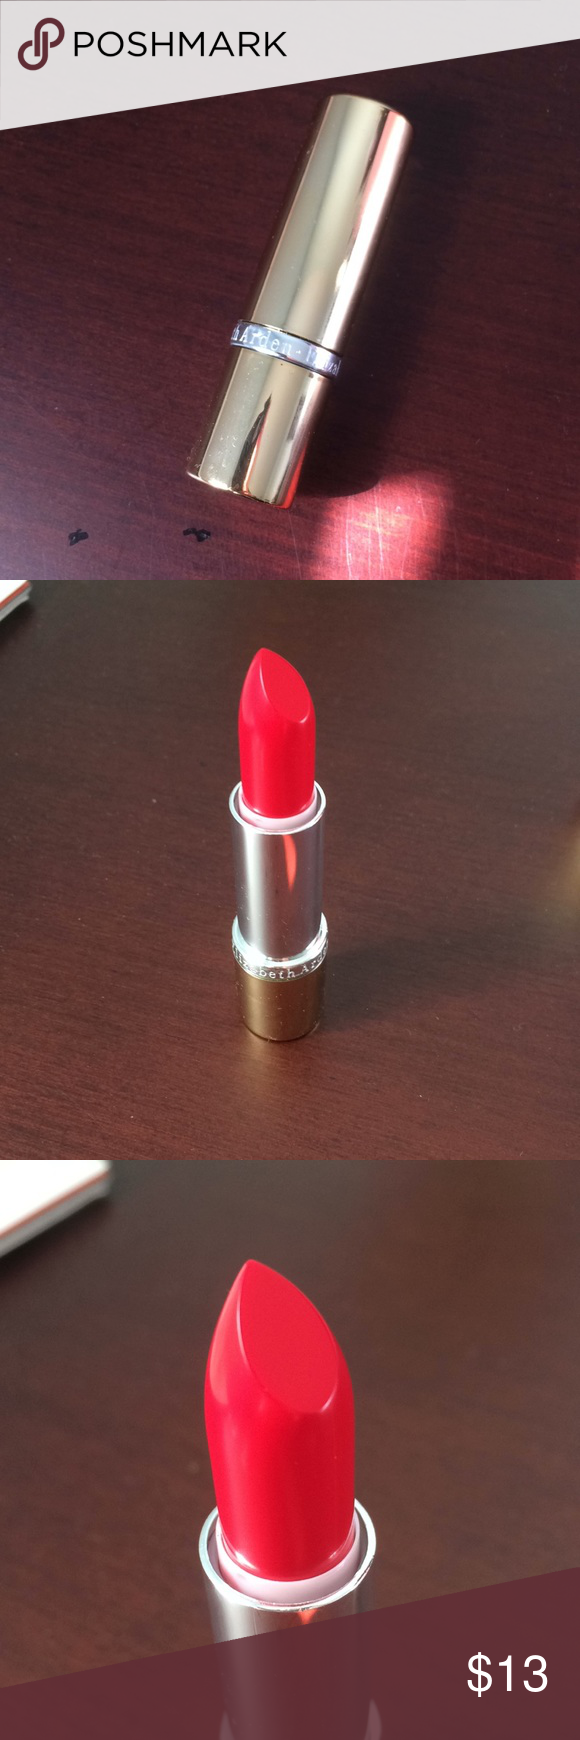 New Elizabeth Arden Lipstick In Red Door Red Nwt My Posh Closet